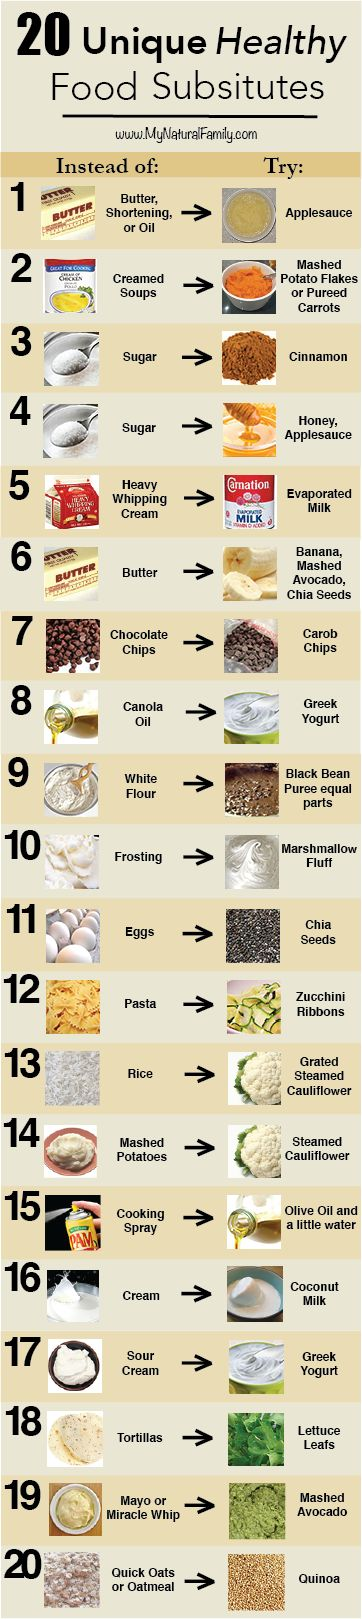 pics How to Replace Eggs in Your Cooking